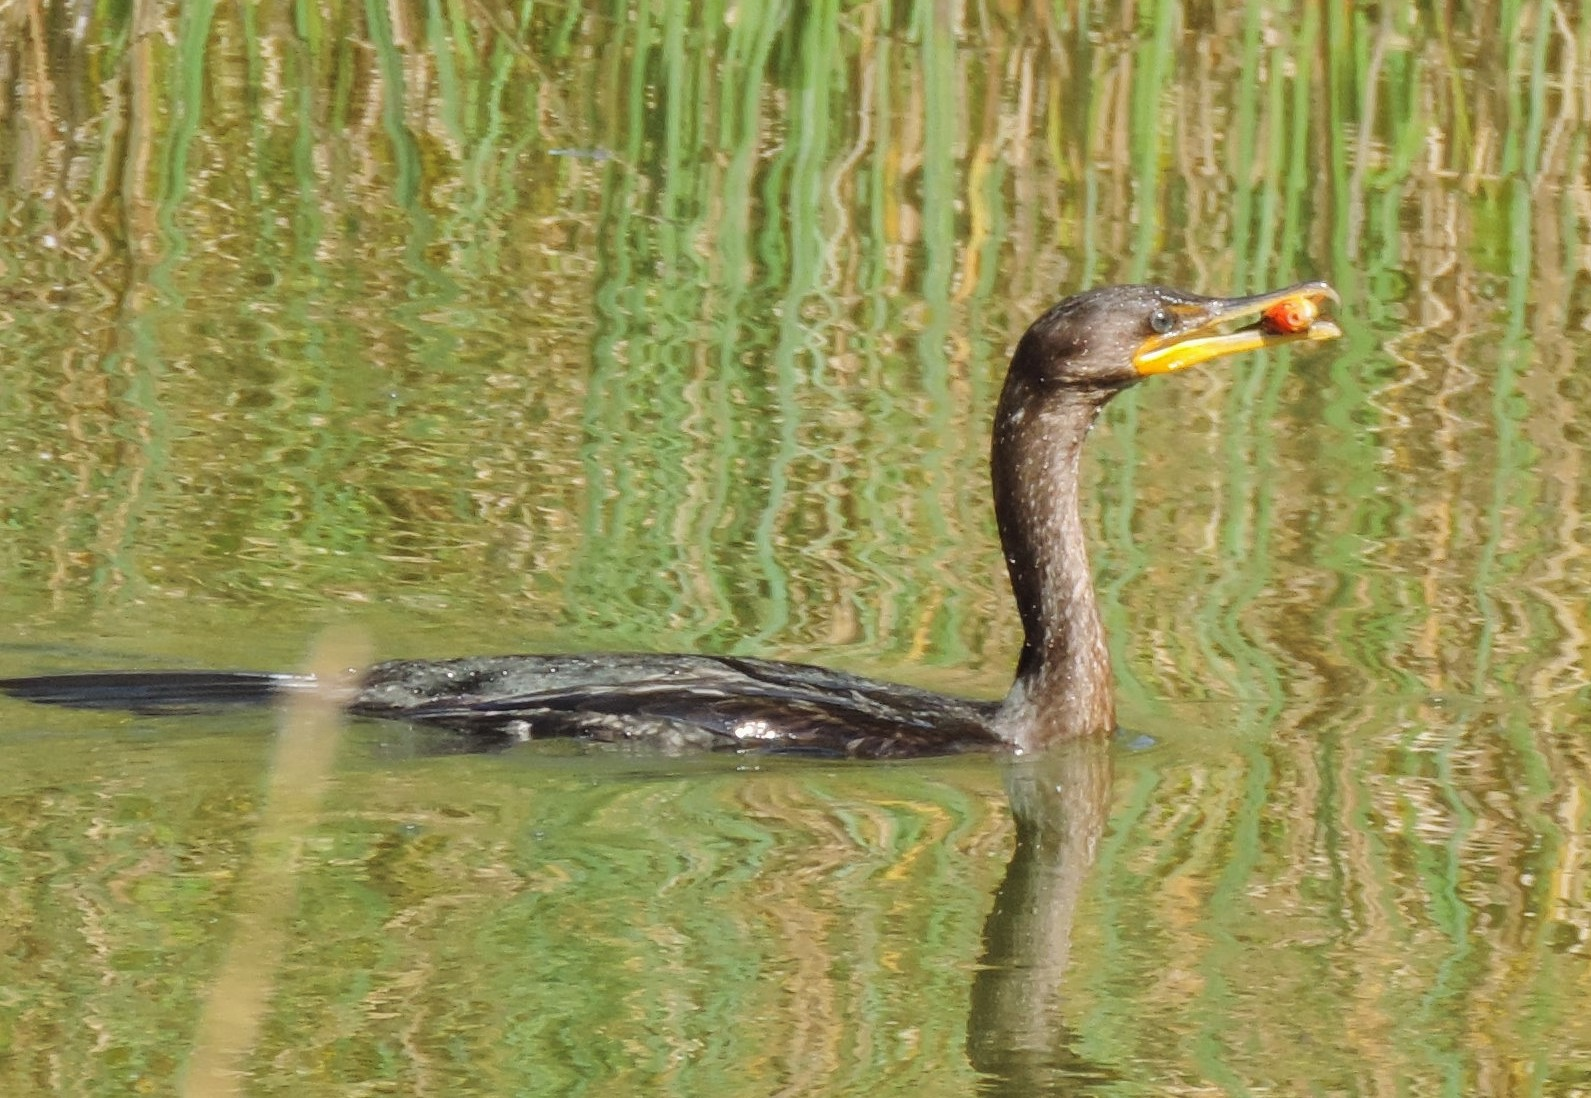 Cormorant with goldfish in mouth